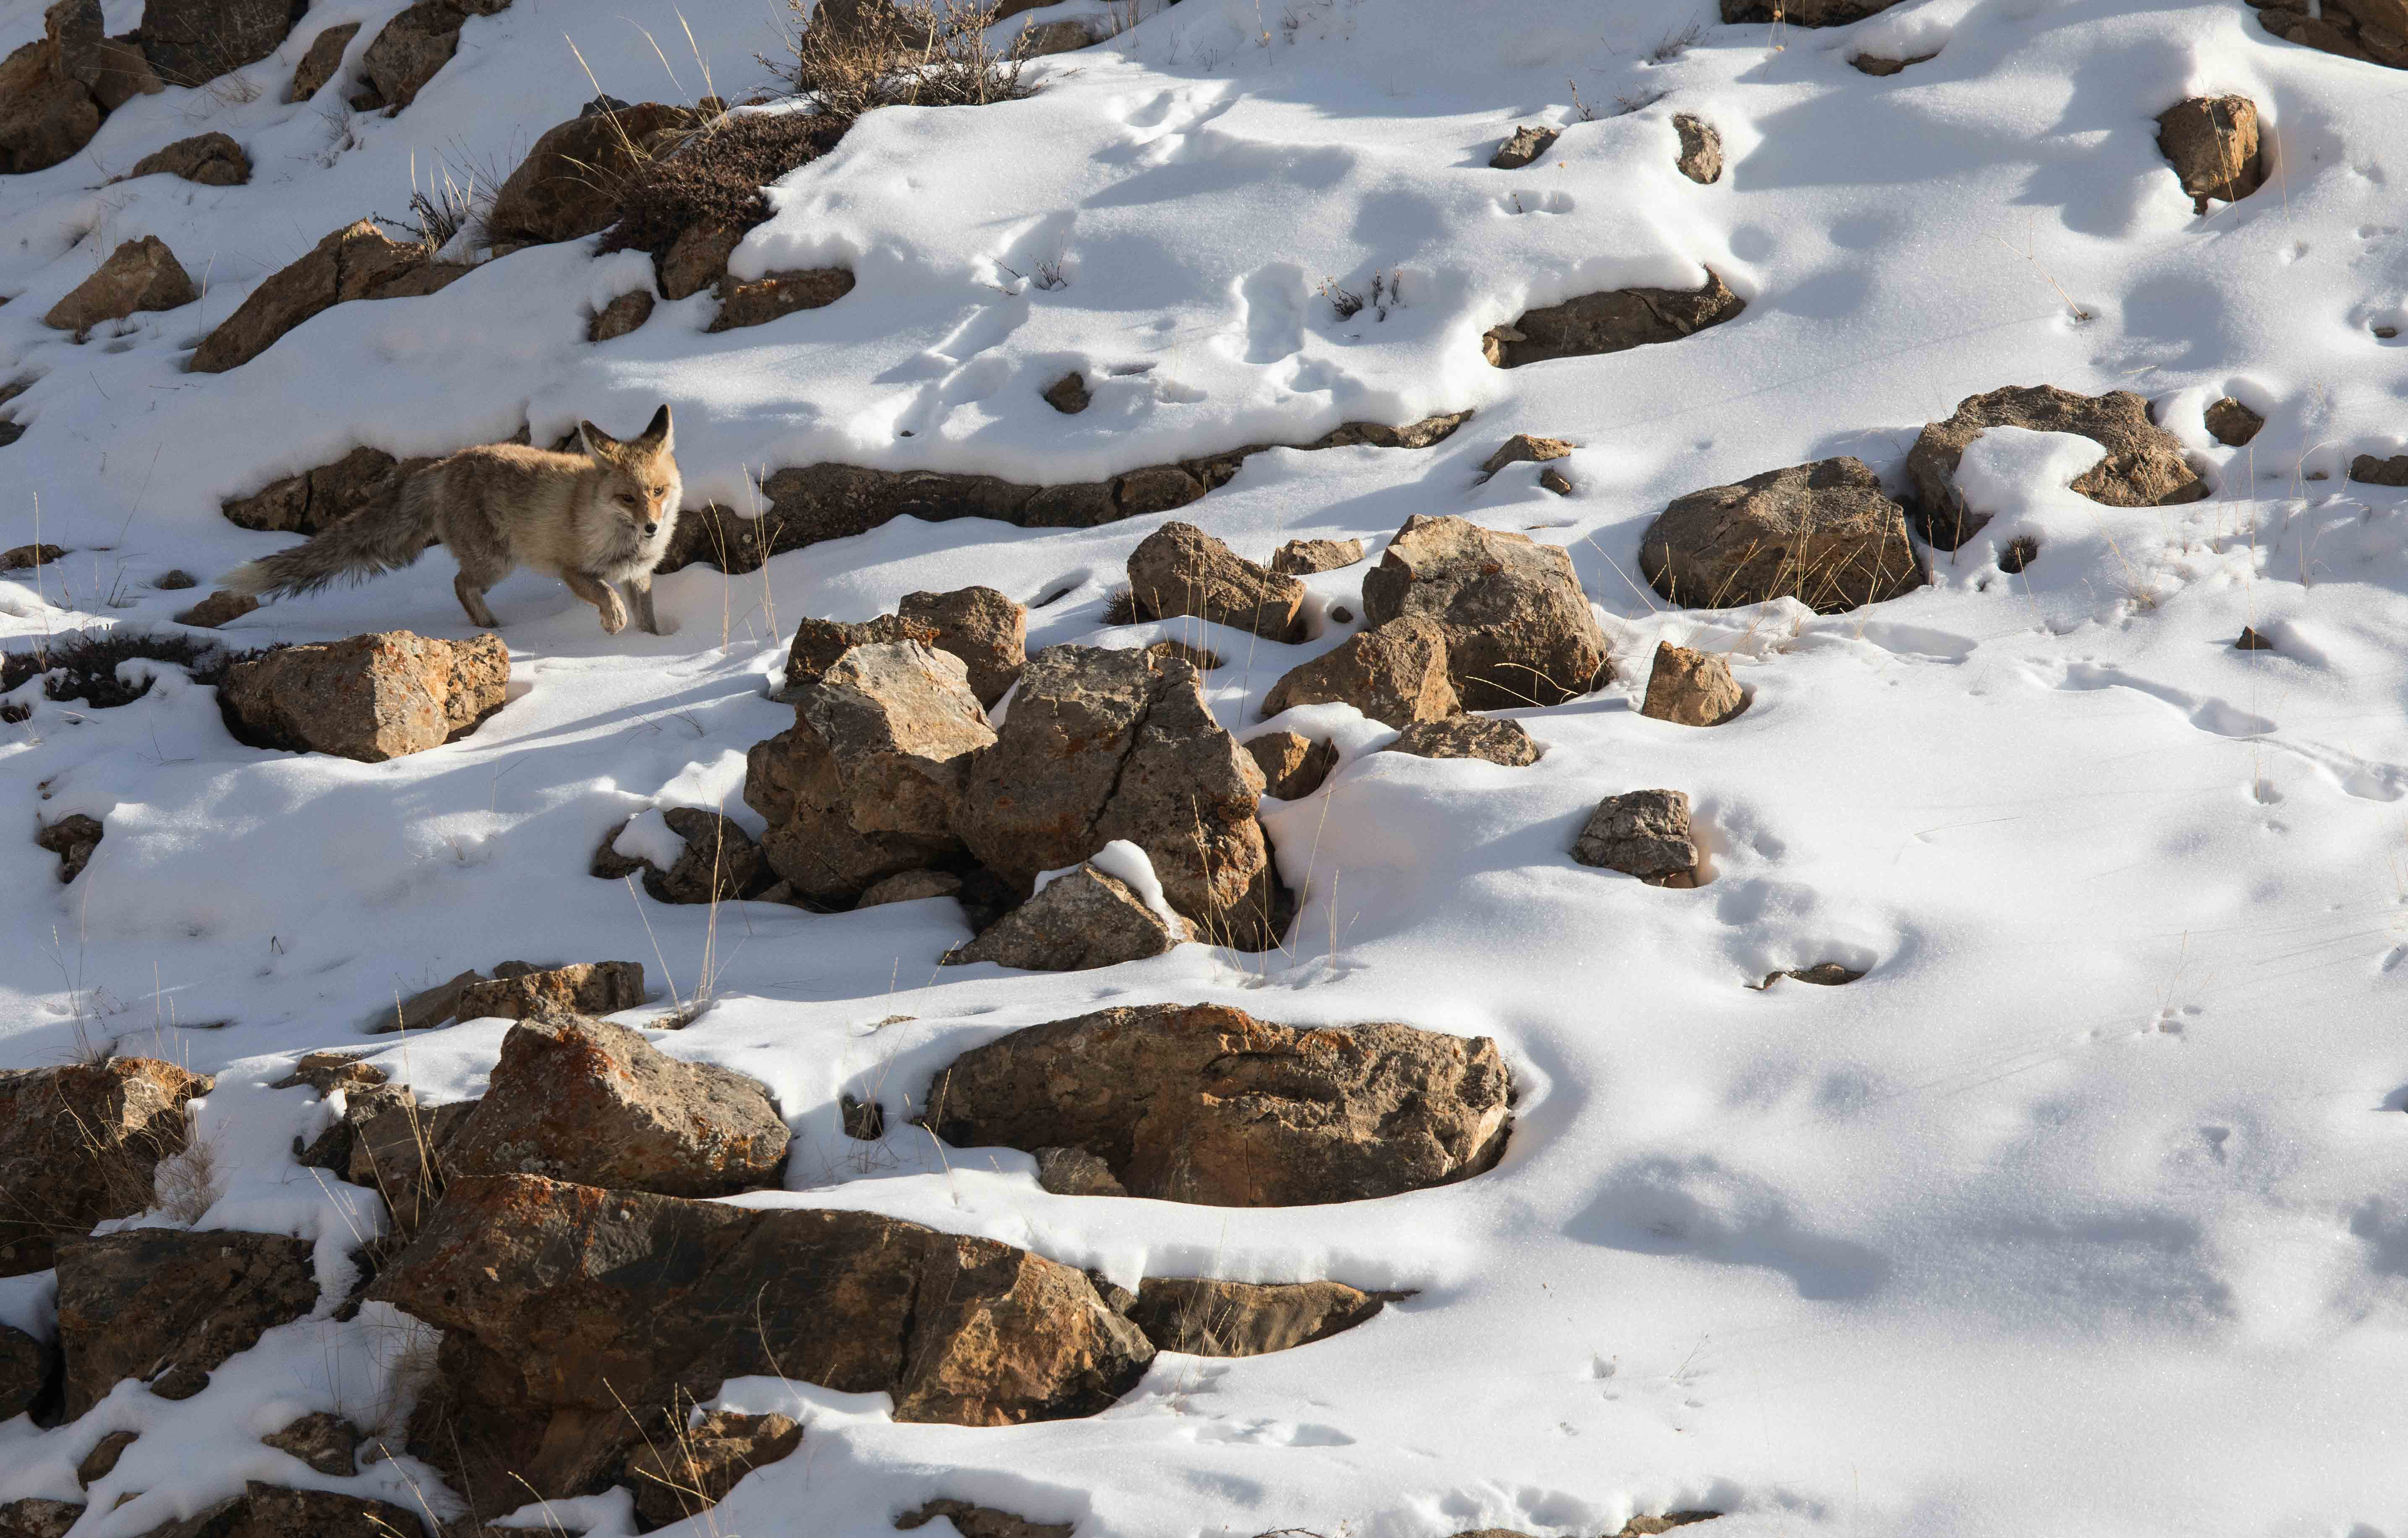 Paw prints of the red fox appear broader on soft snow, due to the manner in which the animal moves through the terrain. 